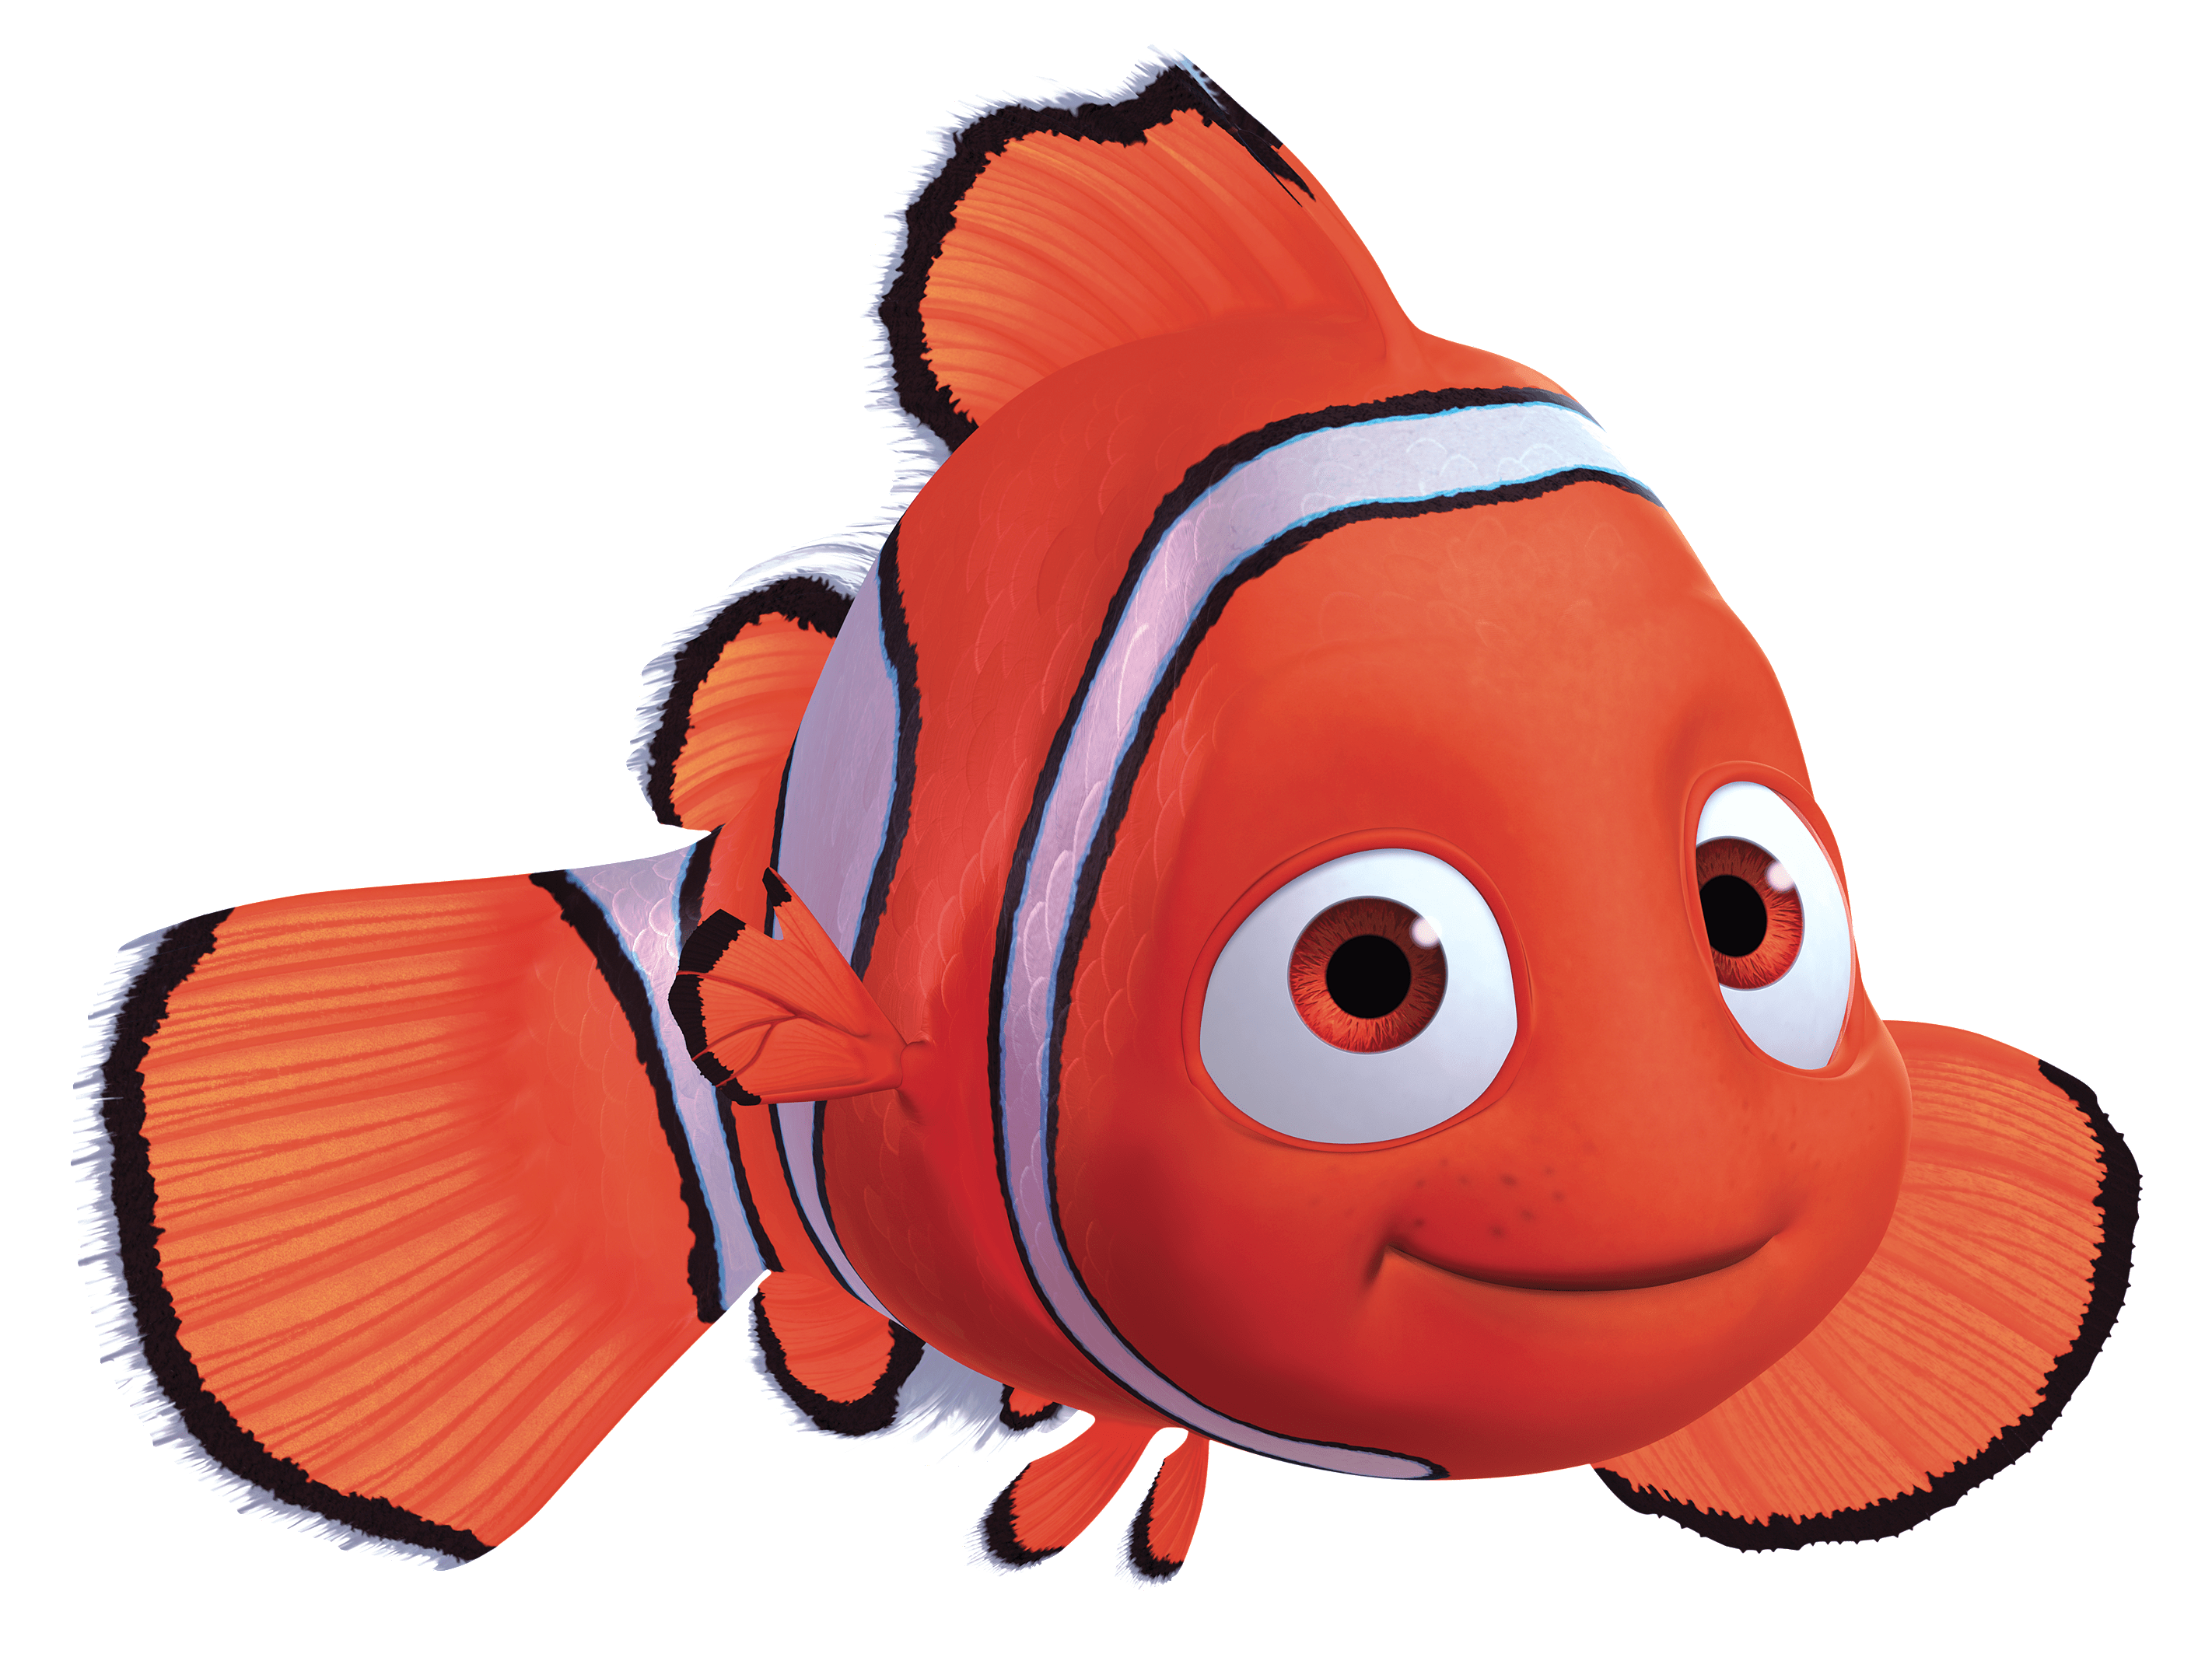 2844x2136 Finding Nemo Png Transparent Finding Nemo.png Images. Pluspng